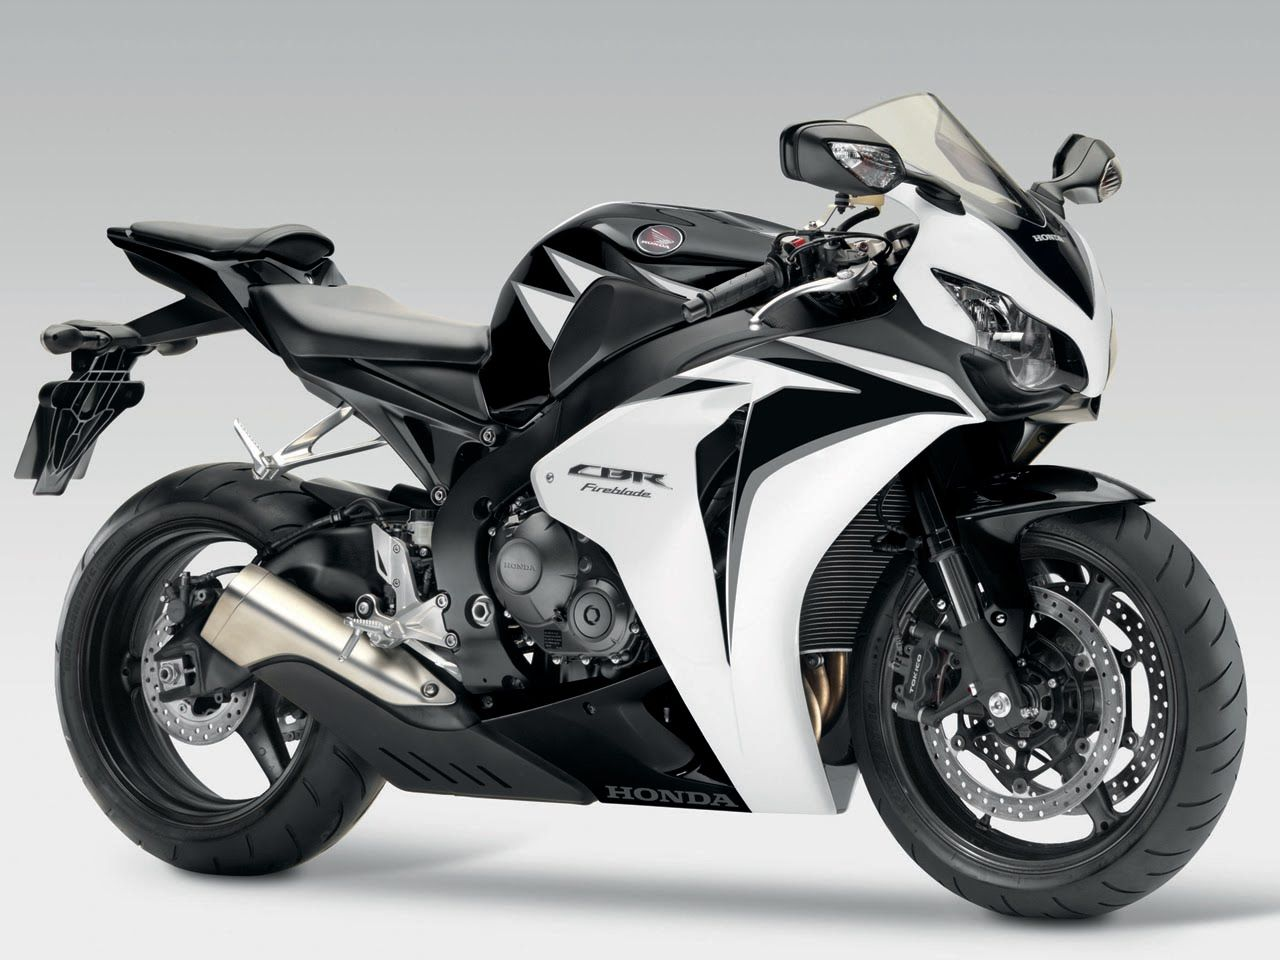 Cool honda cbr 1000 rr photo gallery complete information for Yamaha rr 1000